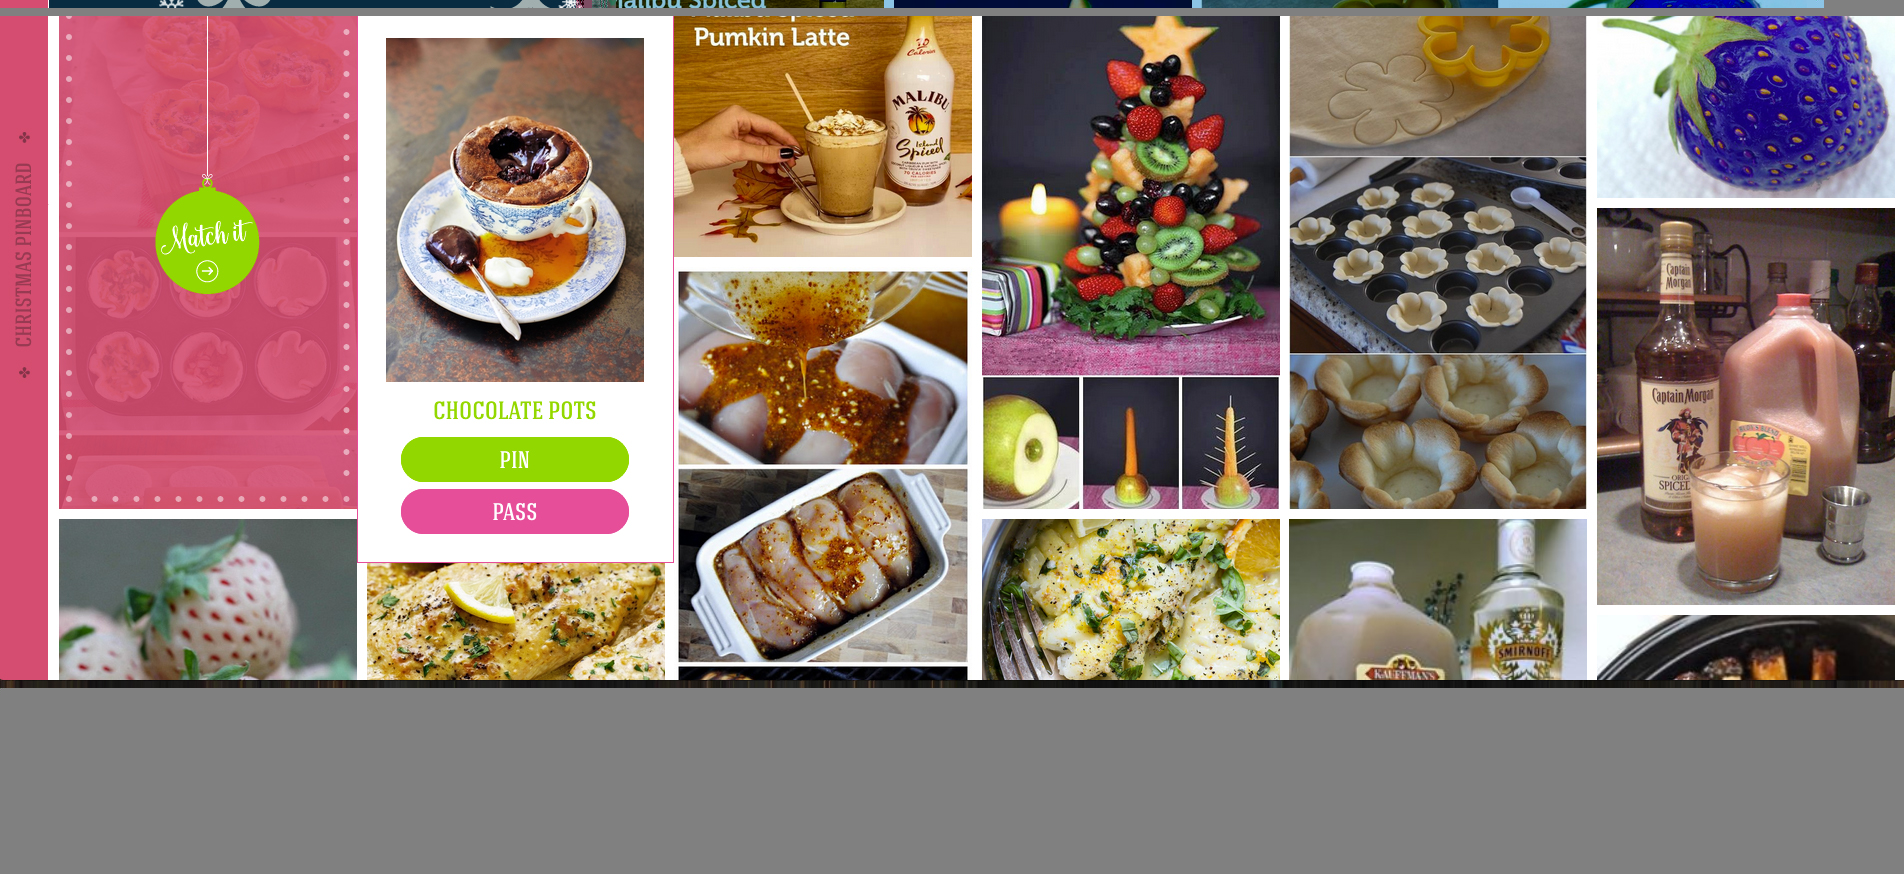 Your Pinterest pins are matched to recipes